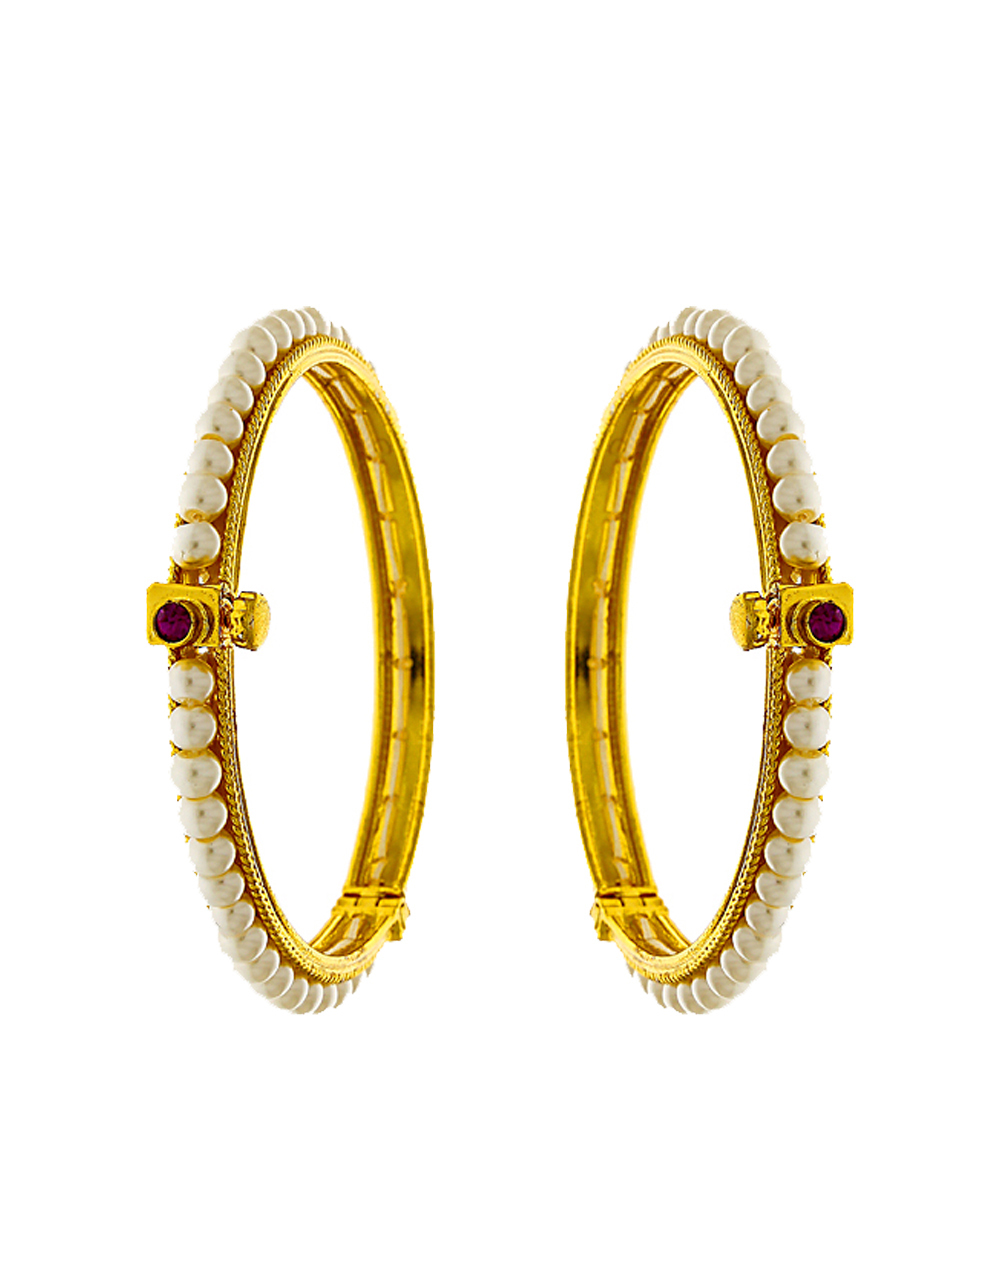 Delicate Embedded With Pearls Golden Finish Traditional Bangles Design Online.